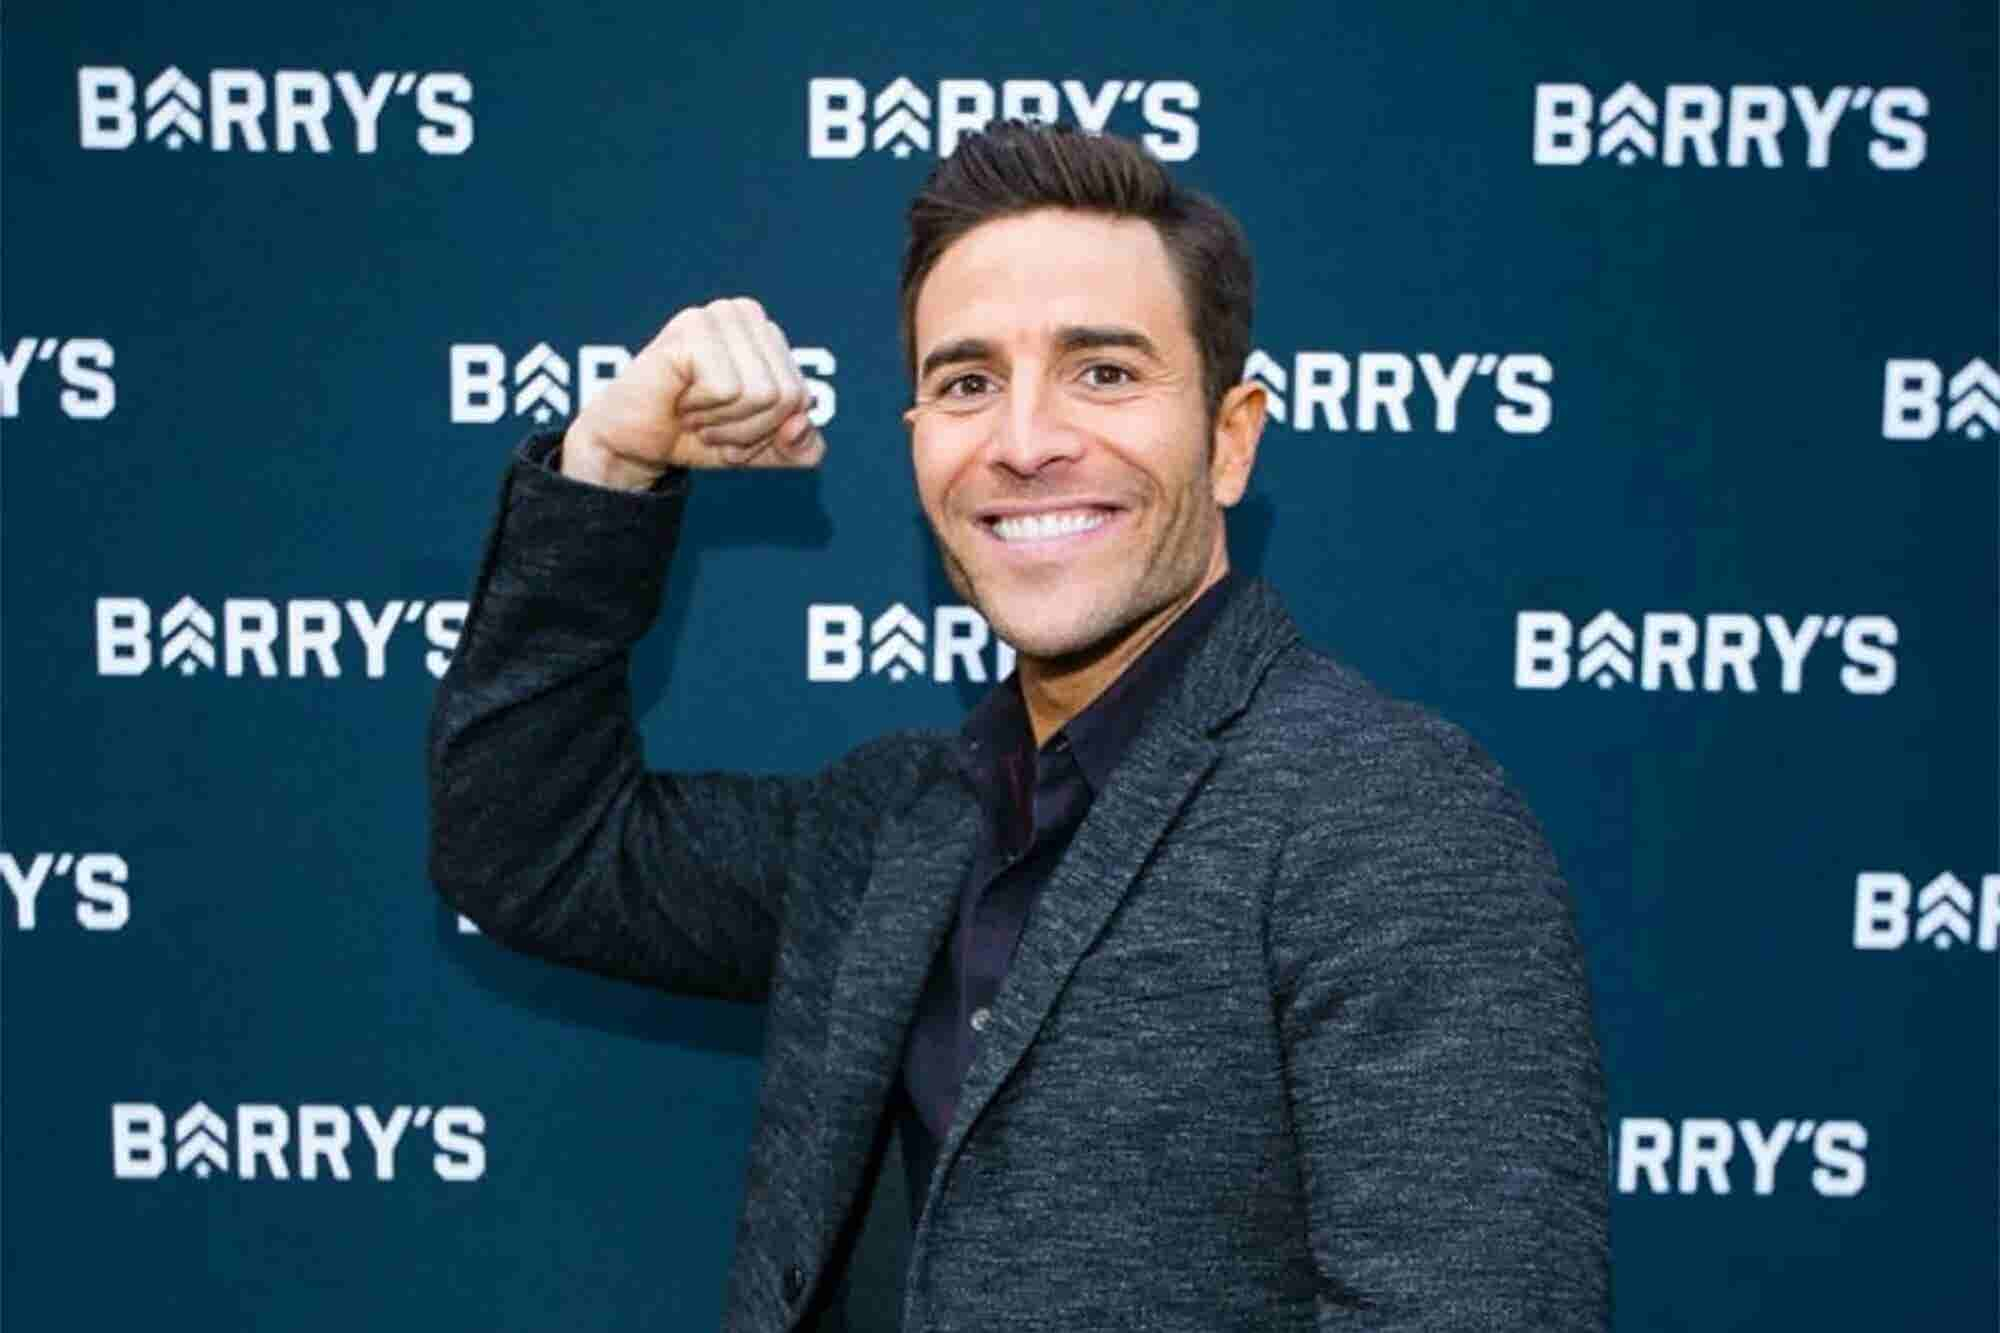 From Customer to CEO in 11 Years: Joey Gonzalez of Barry's Bootcamp Shares Top Success Strategies (Podcast)